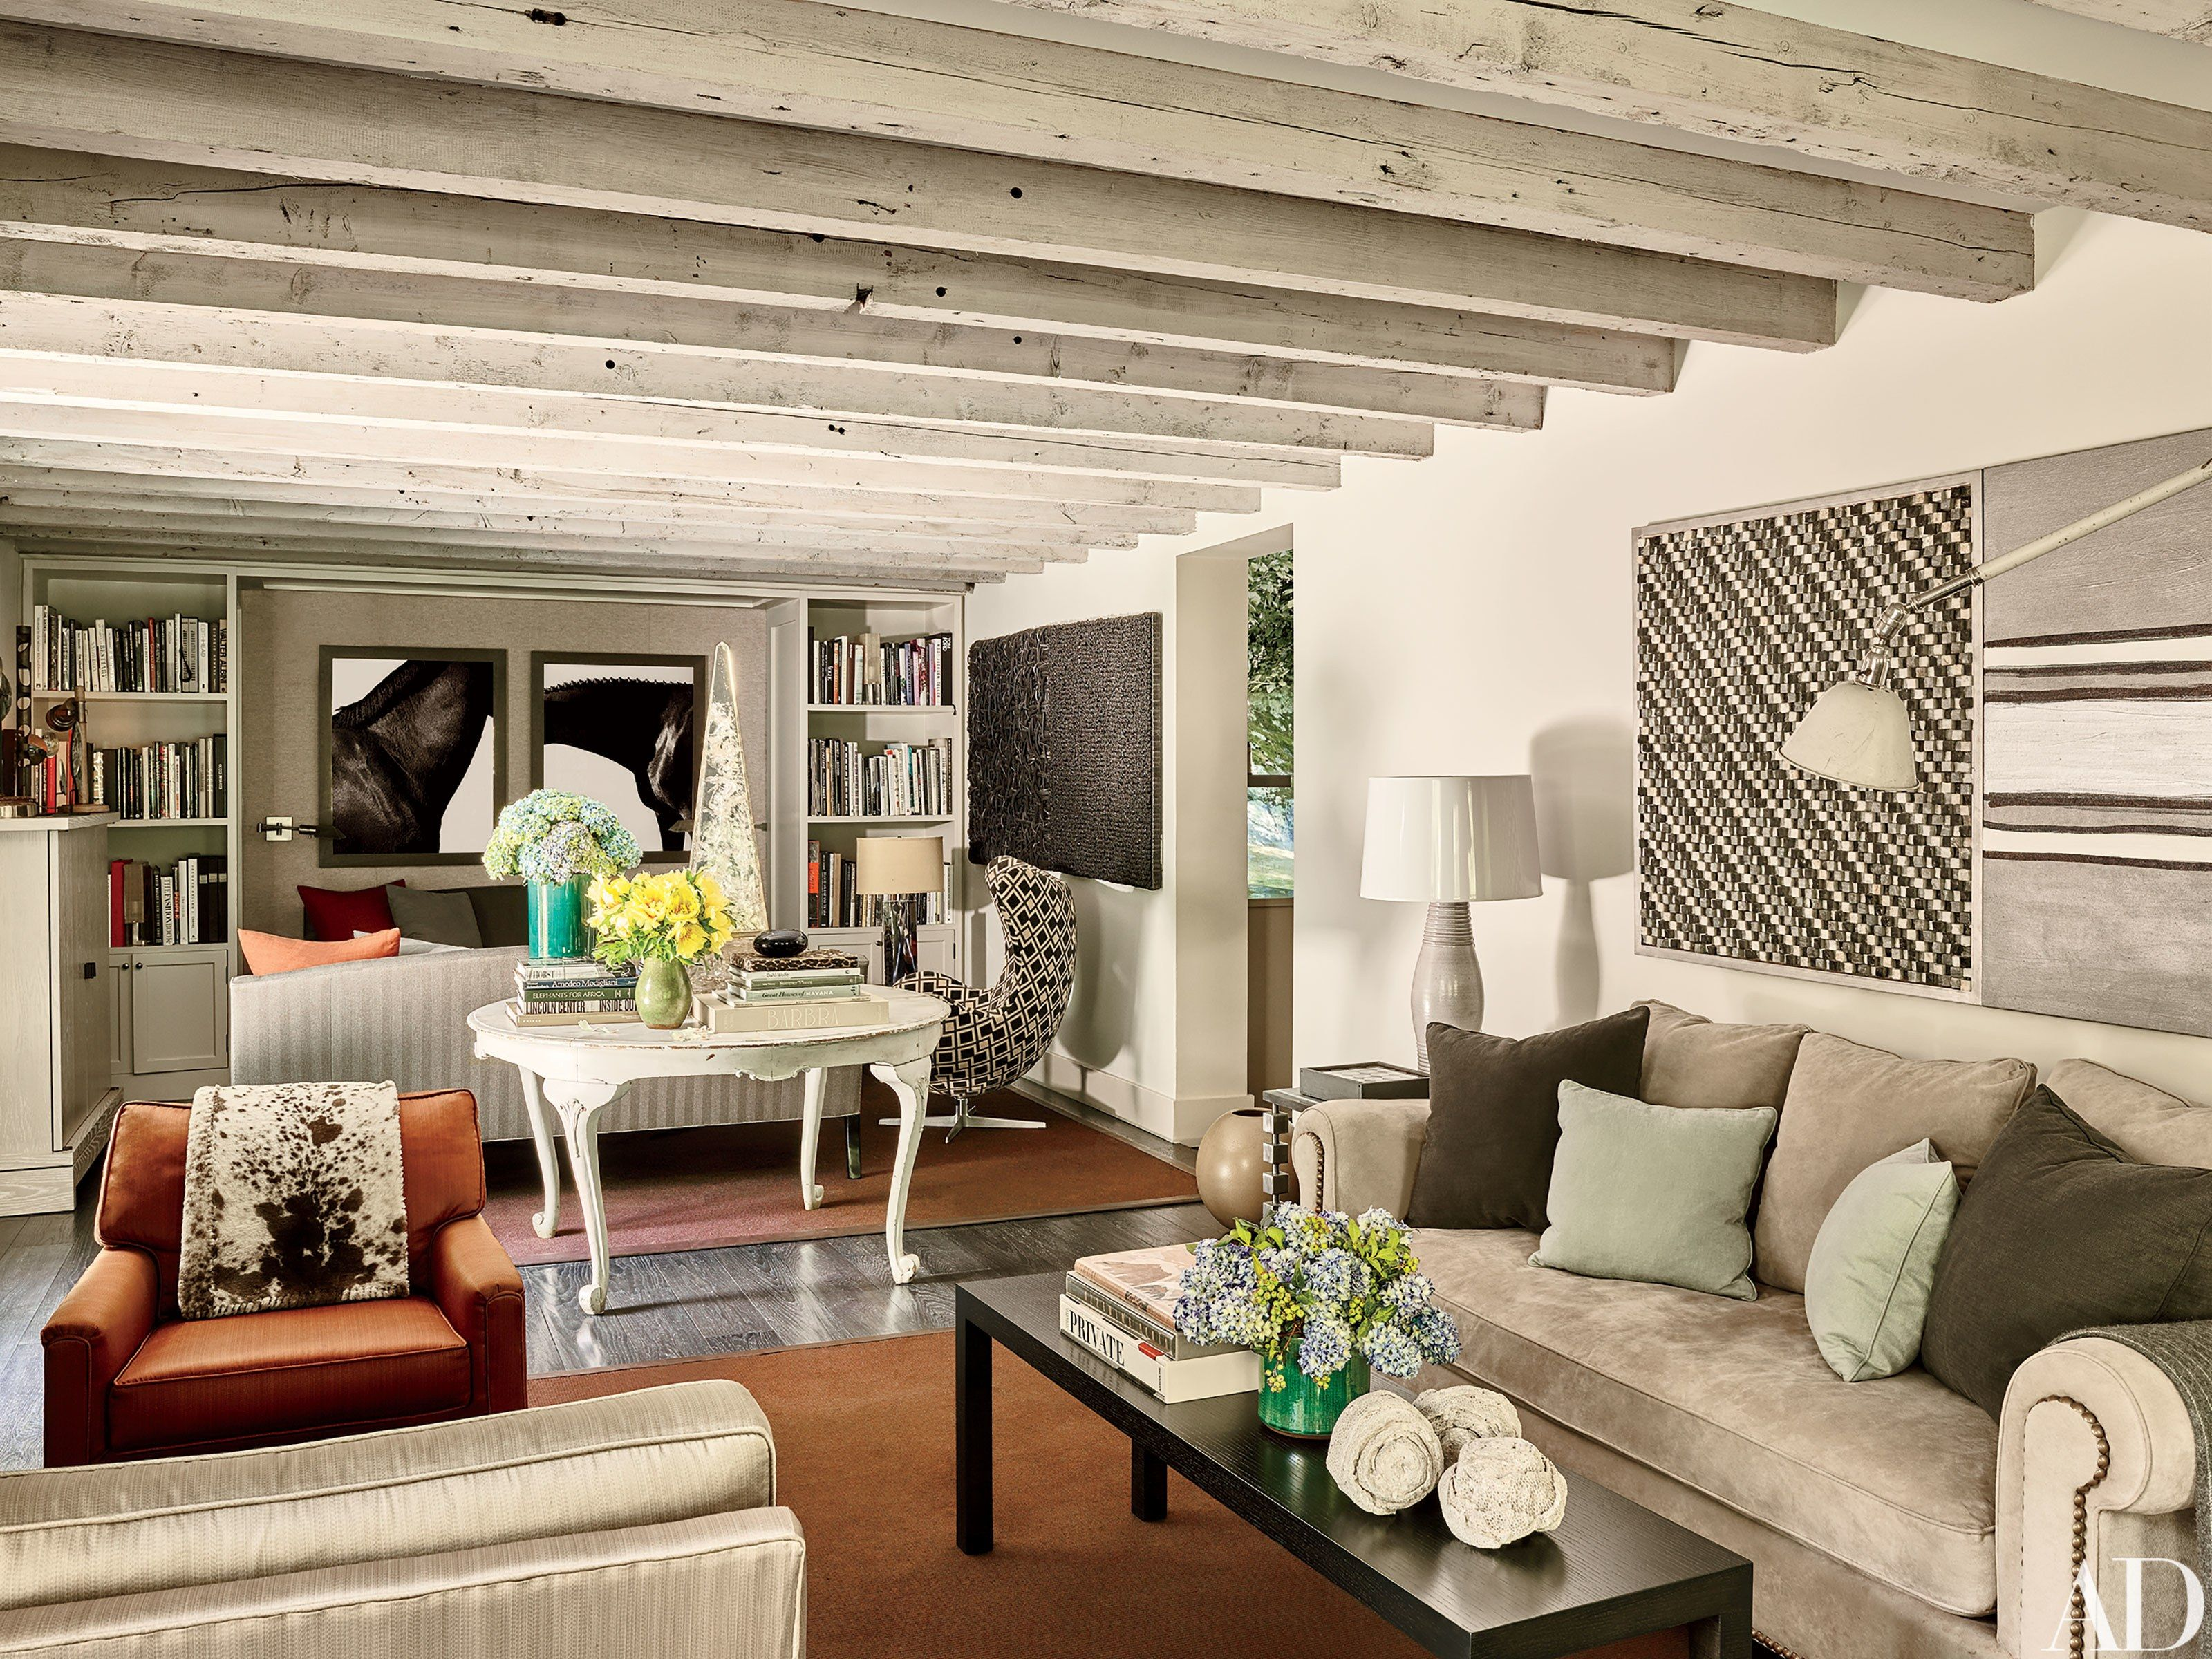 Living Room Center Bedford In.A Colonial Era Residence In Bedford New York Becomes A